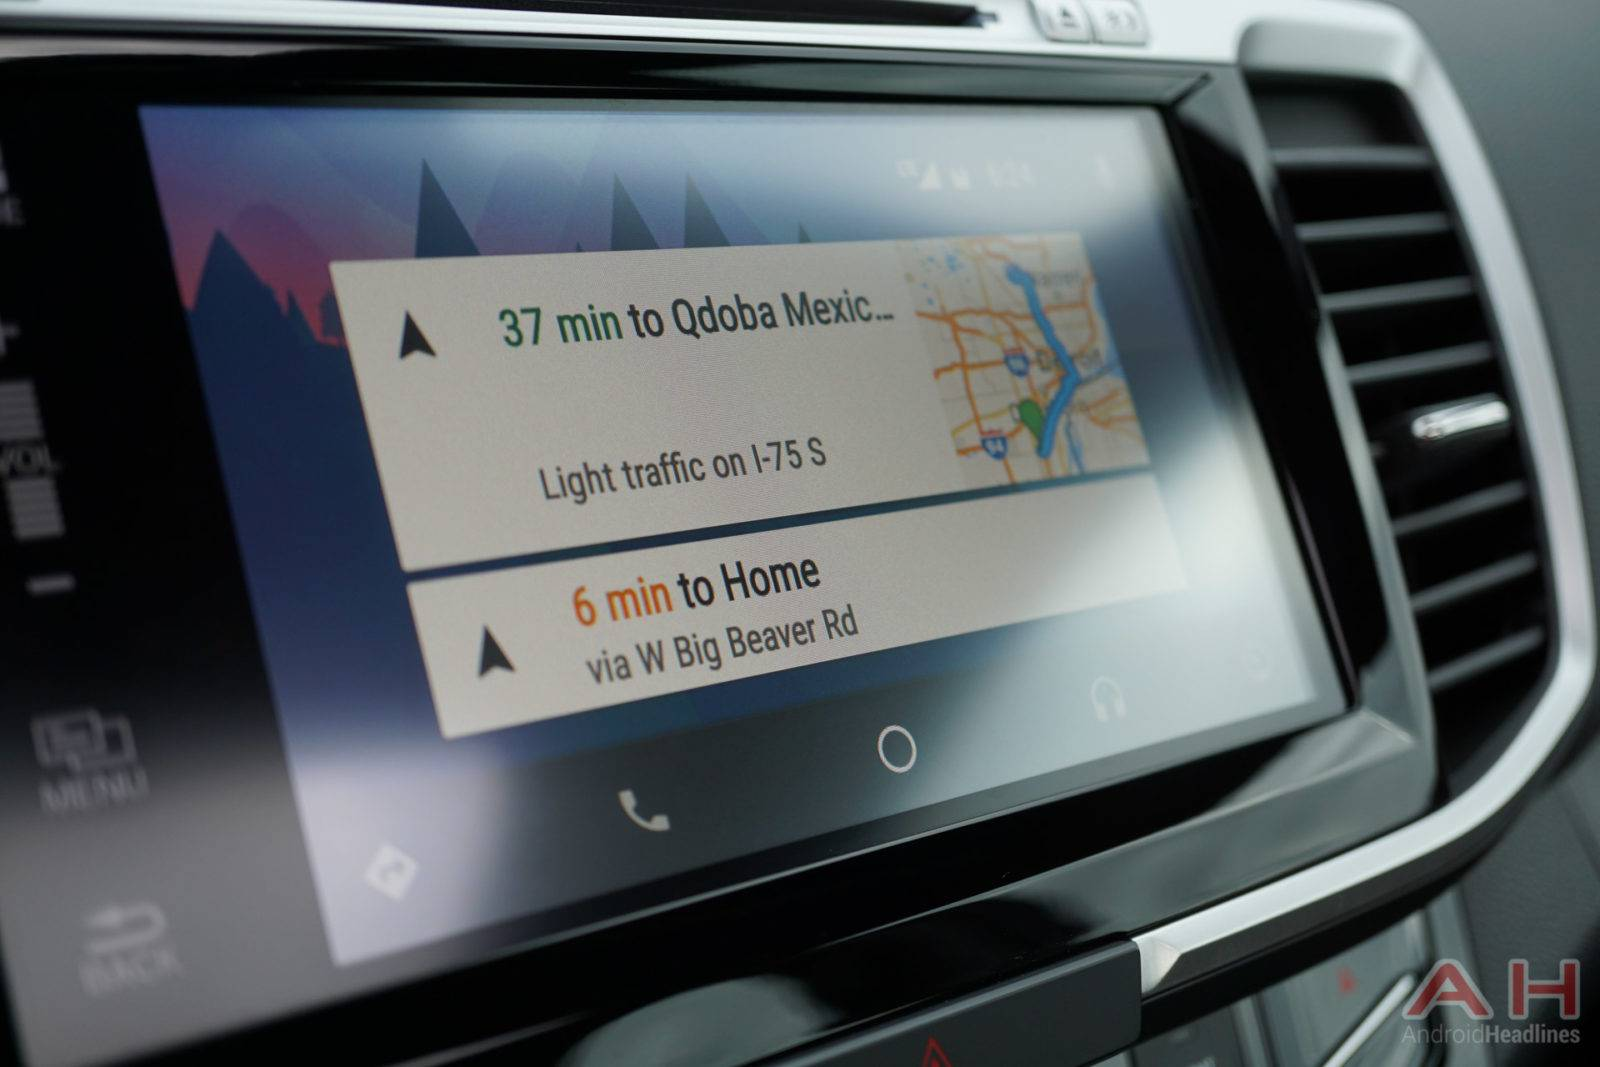 2016-honda-accord-hands-on-android-auto-ah-7-1600x1067